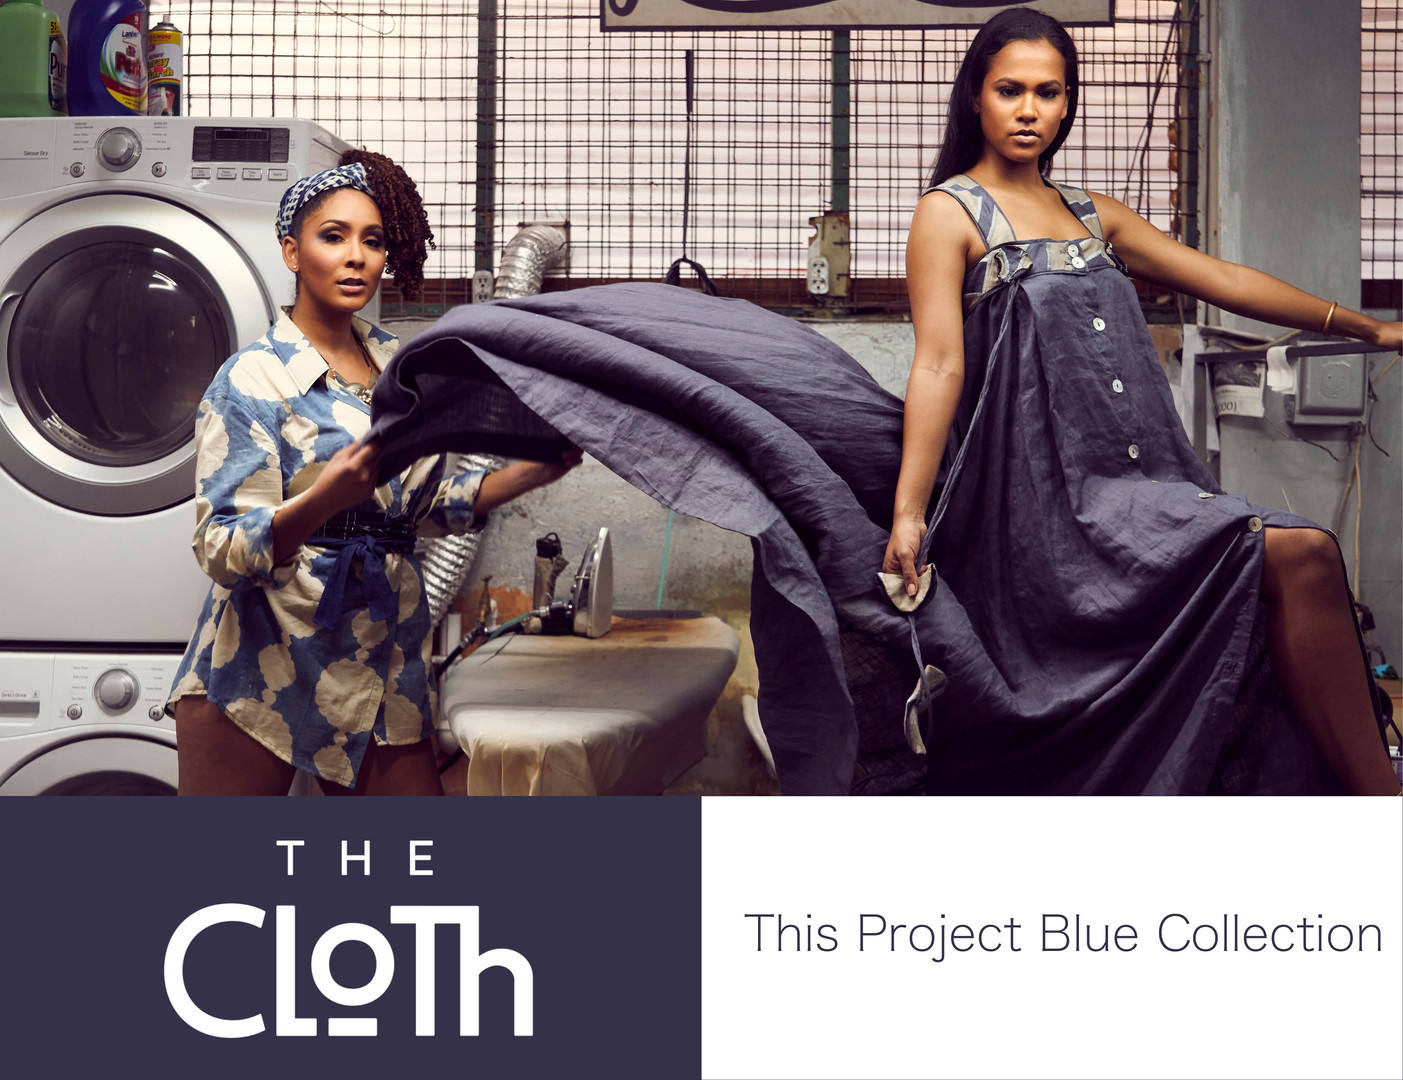 The Cloth - This Project Blue Collection